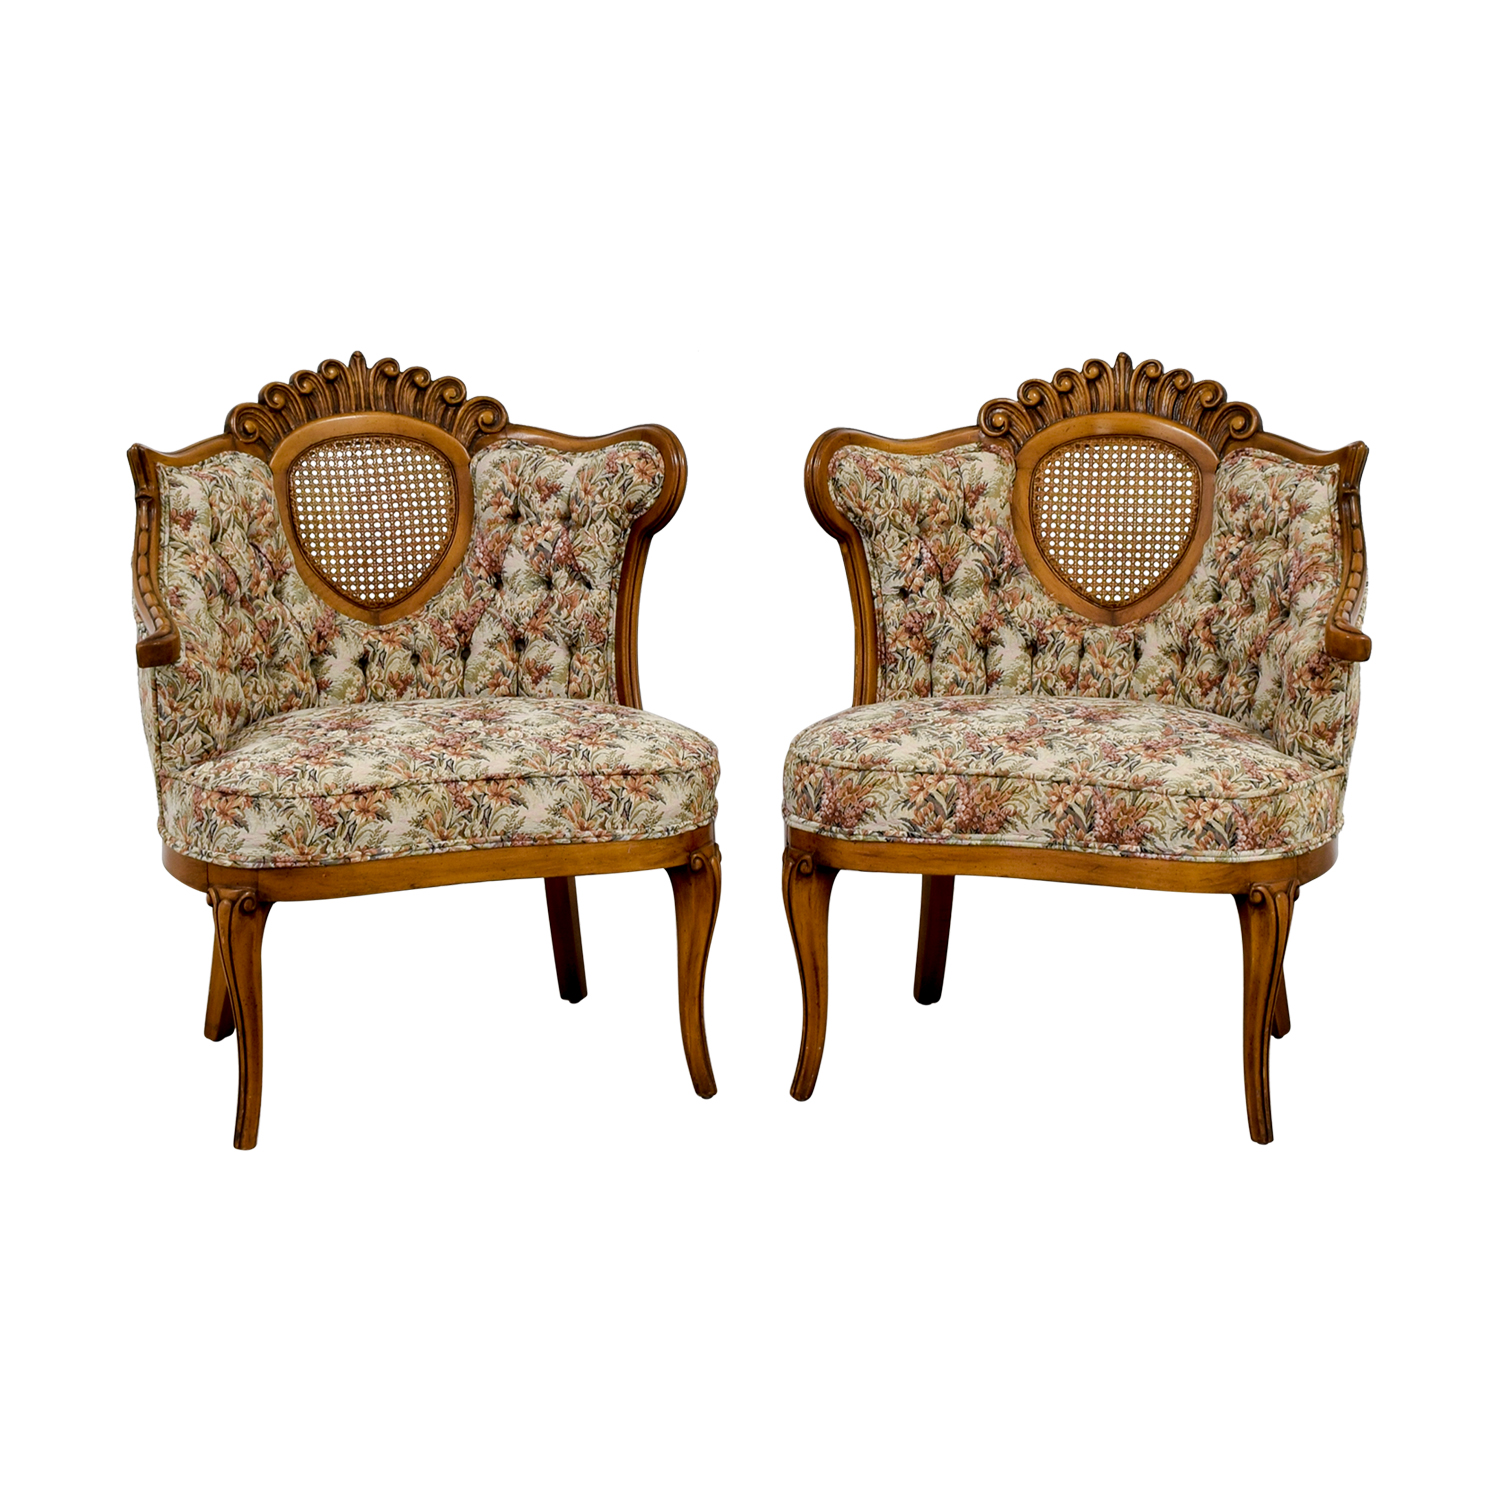 French Provincial Floral with Honeycomb Accent Chairs second hand